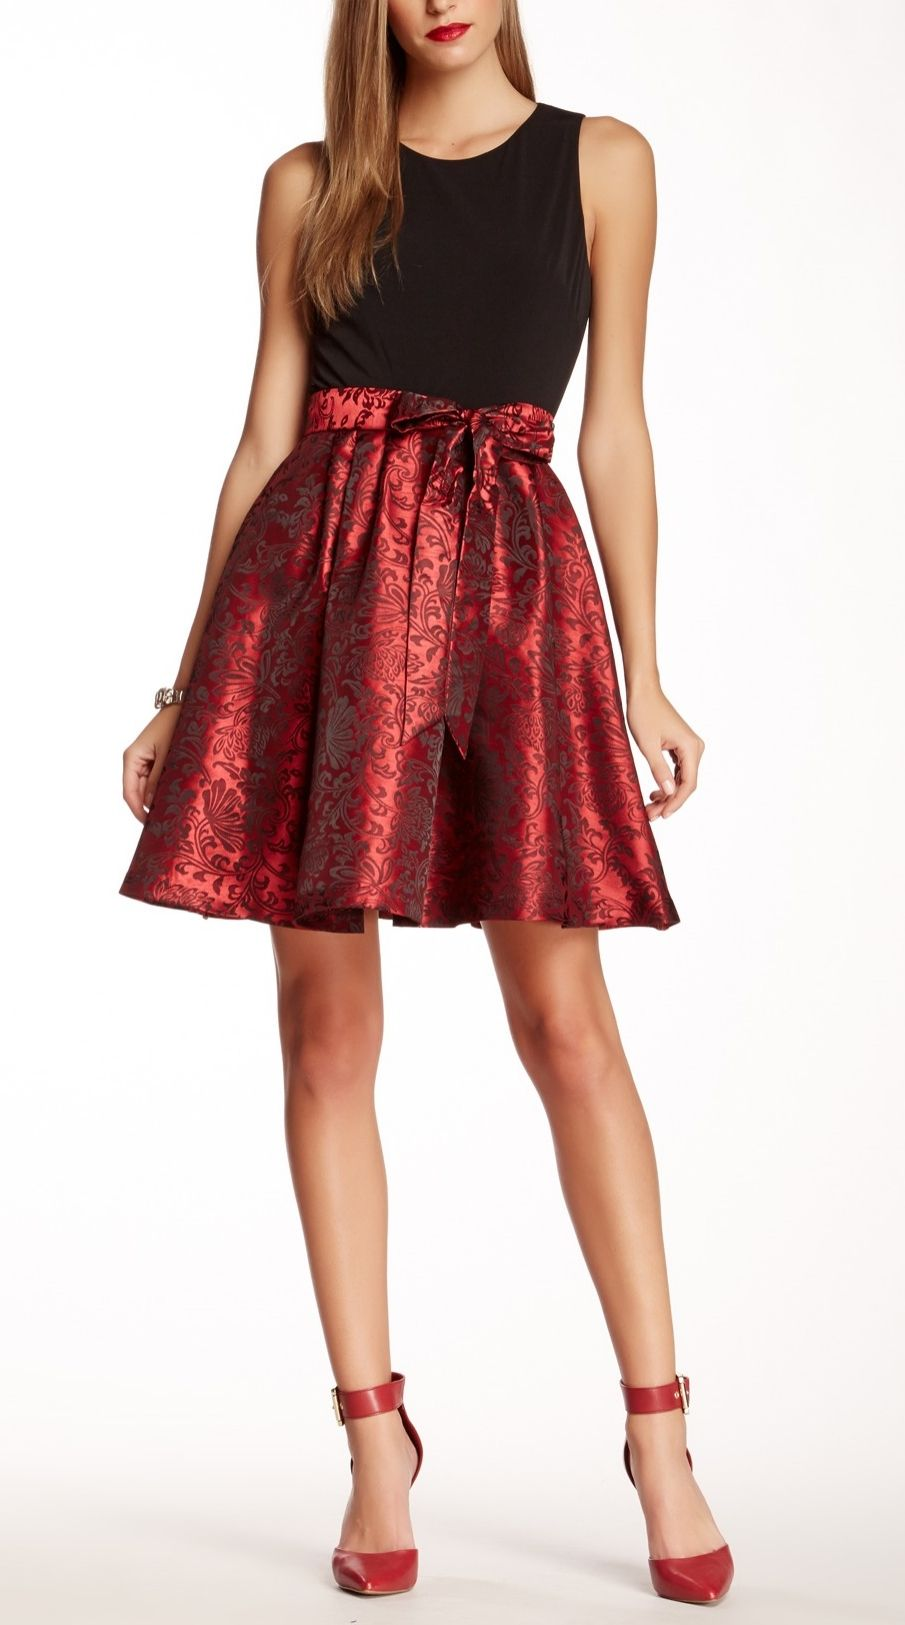 Red Jacquard Dress. Perfect for the holidays!